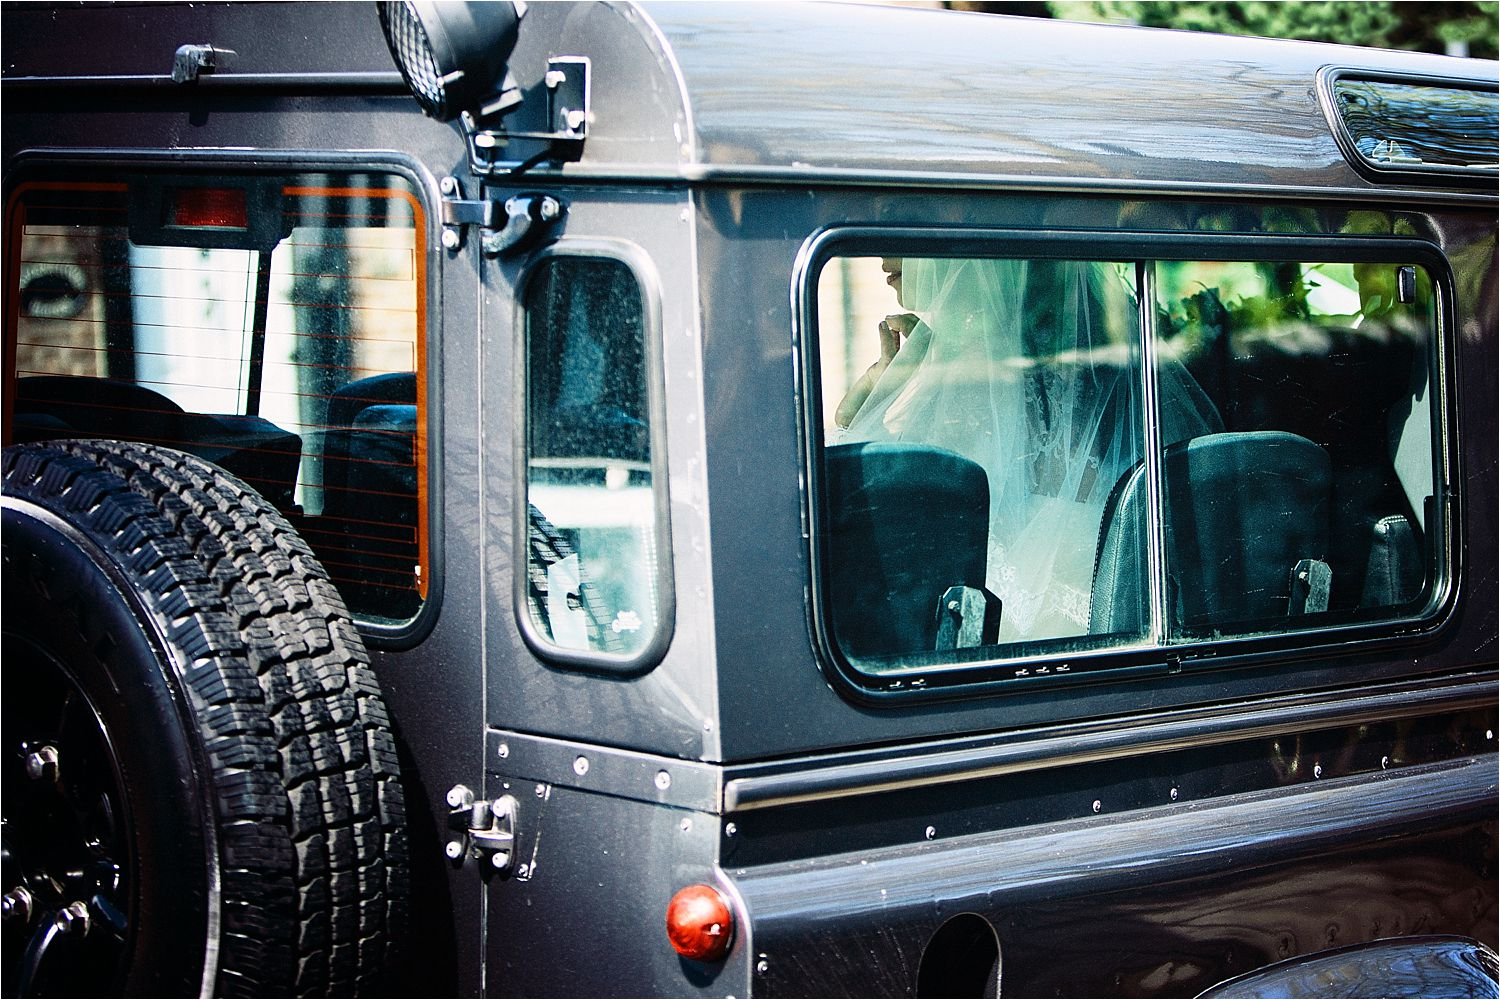 Cheshire bride arrives at church in Landrover Defender